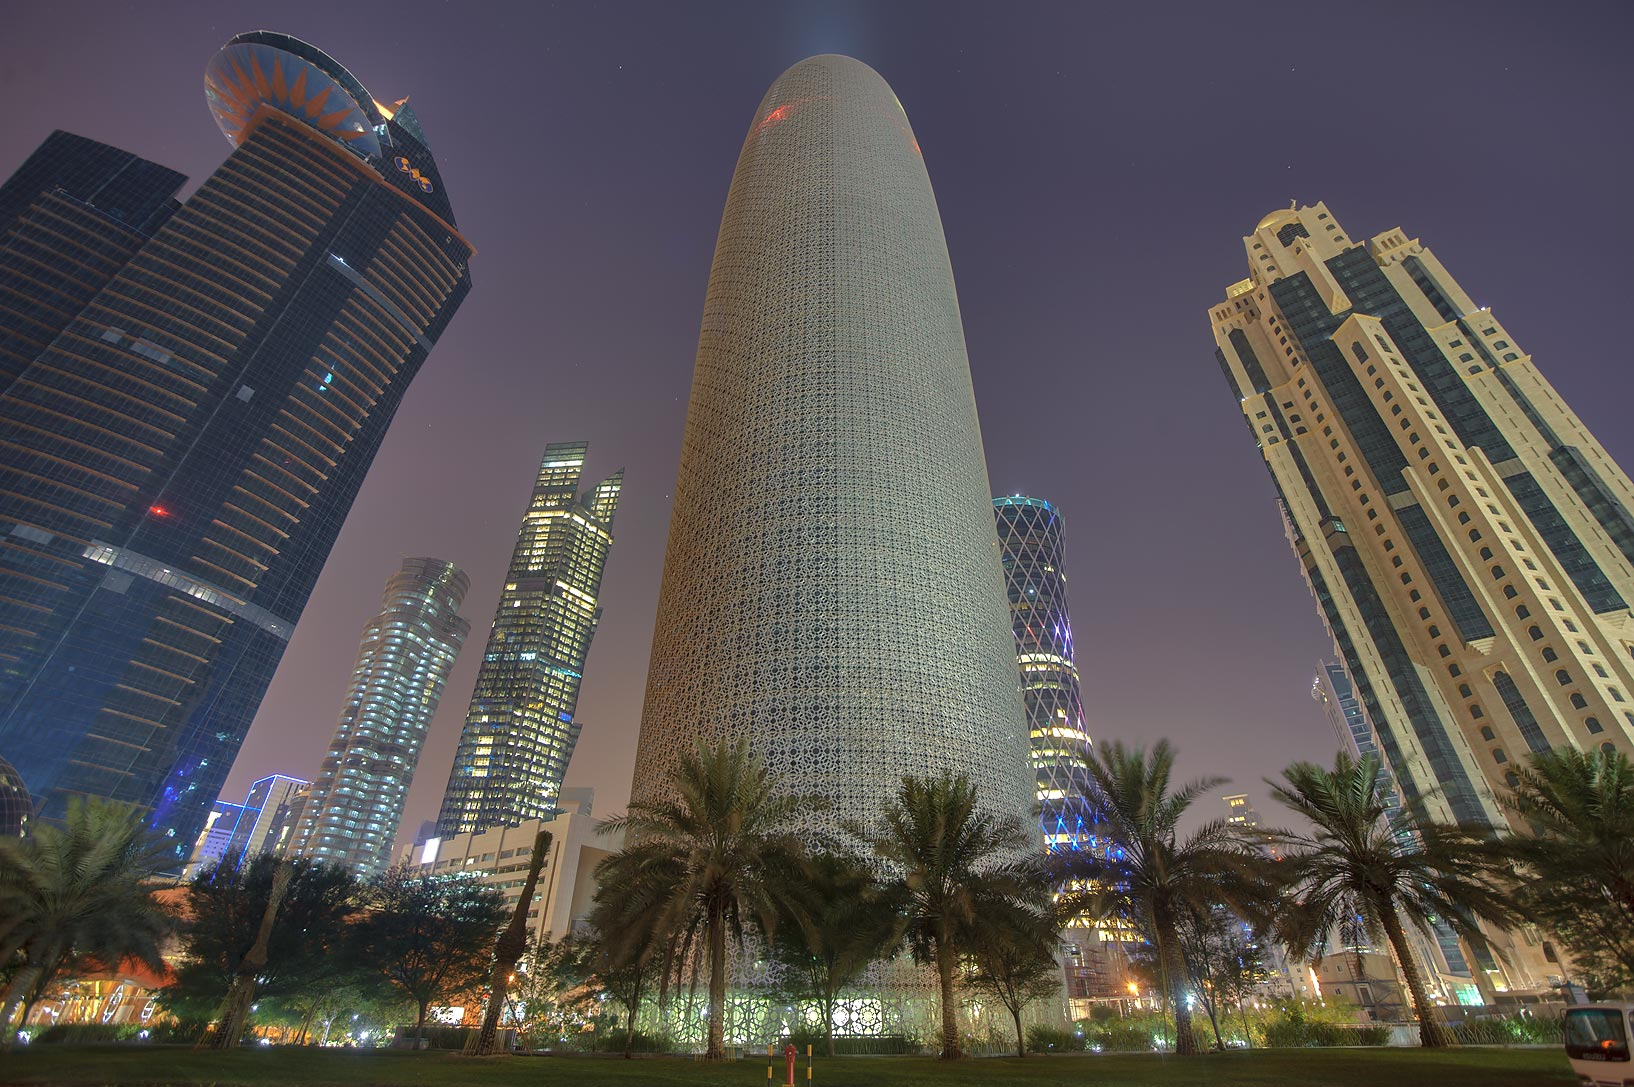 Word Trade Center, Burj Qatar, and Al Jassimiya...Bay, view from Corniche. Doha, Qatar